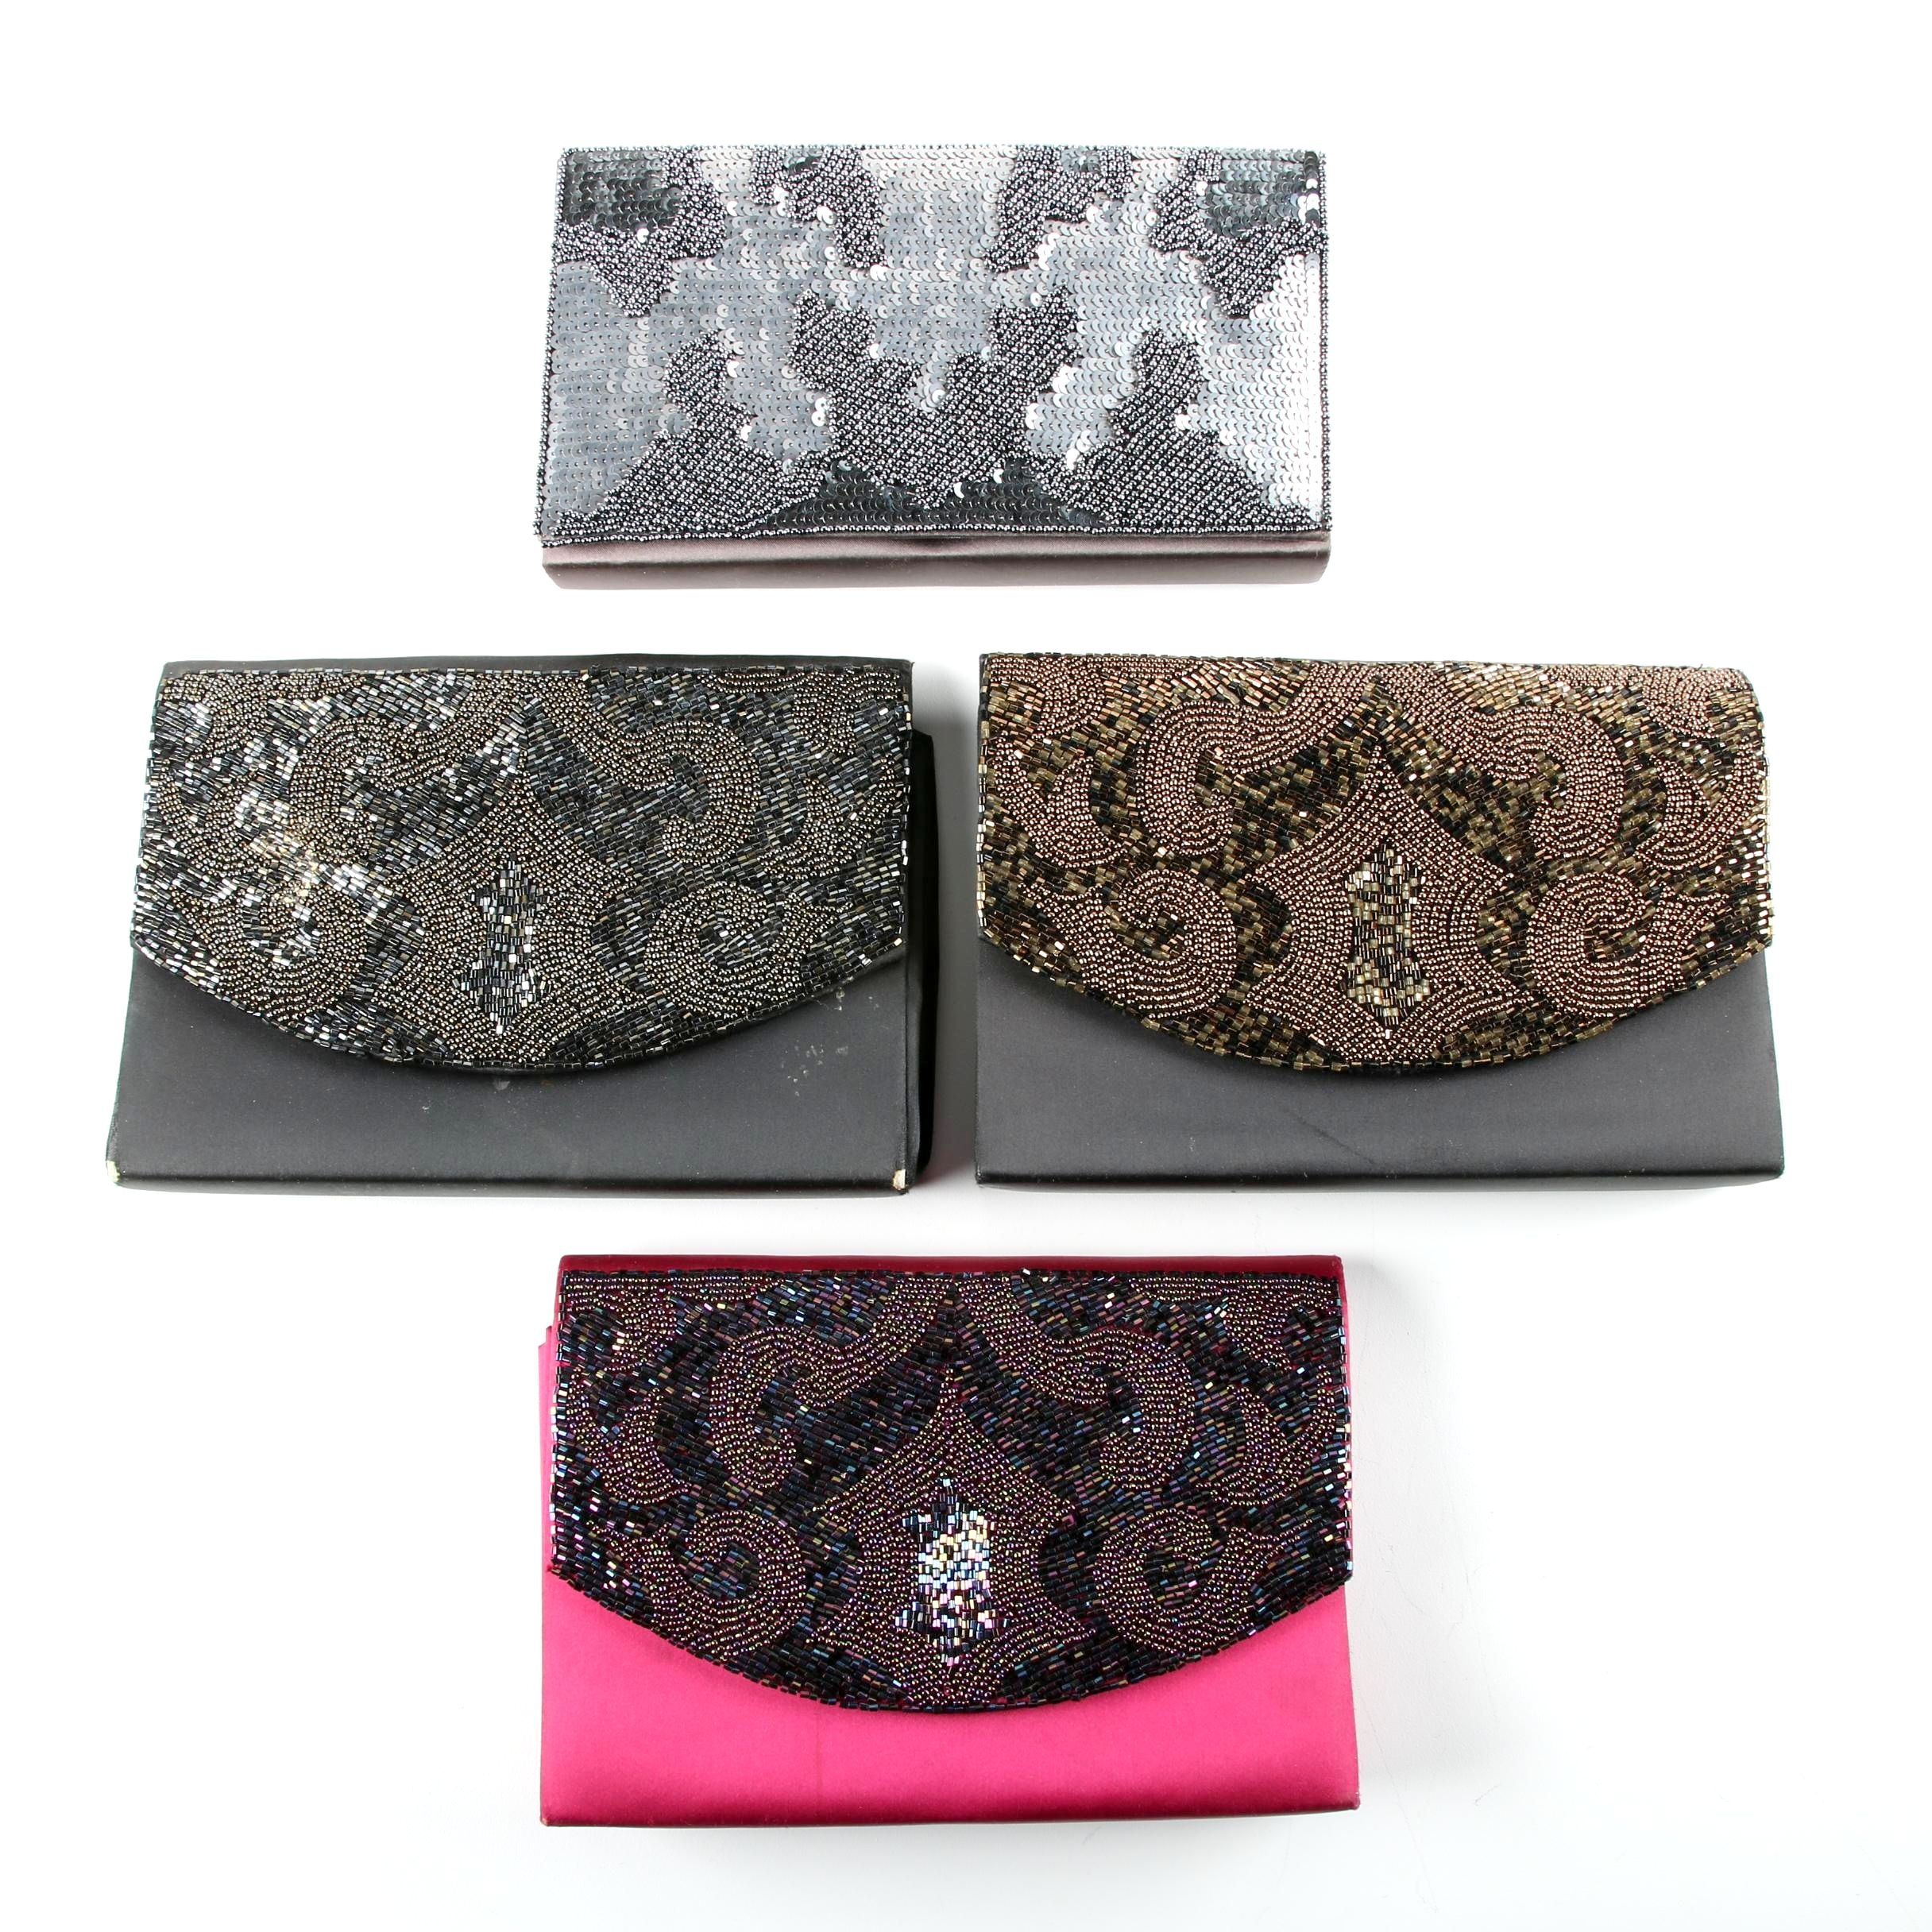 Caparros Embellished Satin Evening Clutches